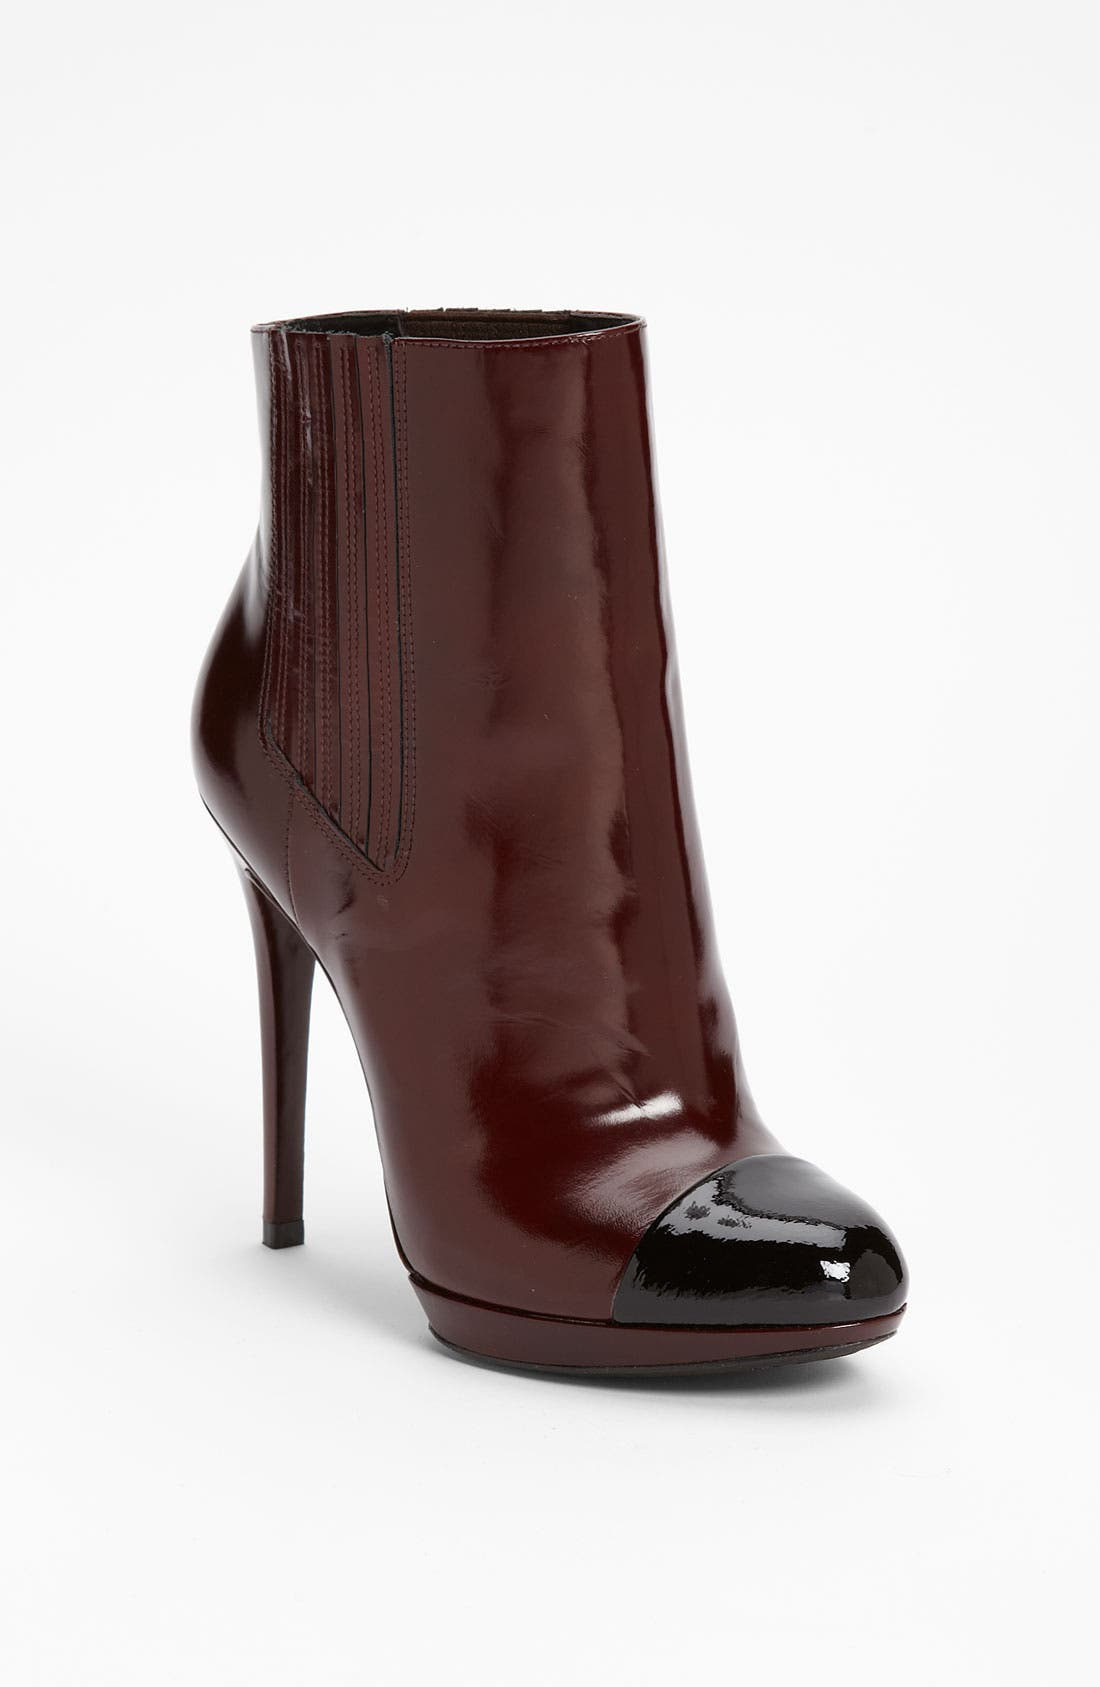 Alternate Image 1 Selected - B Brian Atwood 'Fragola' Boot